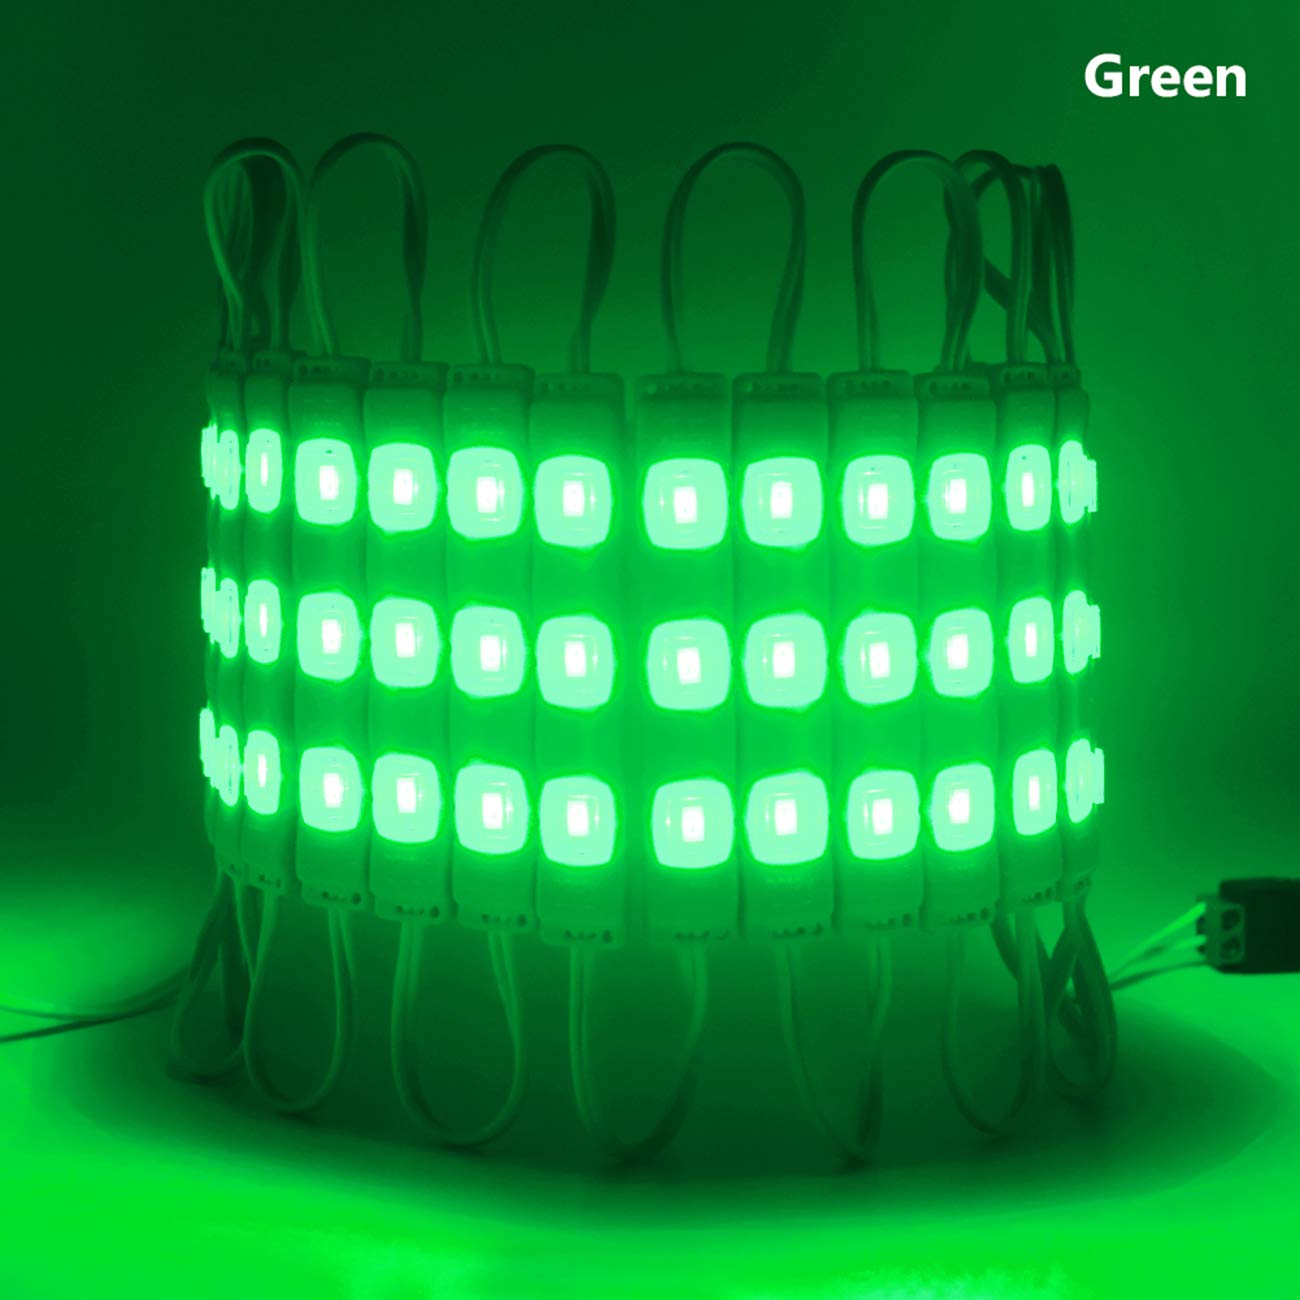 LED Module Light Green Super Bright 5730 LED Storefront Lights for Advertising Showcase Store Display Letter Sign with Tape Adhesive Backside